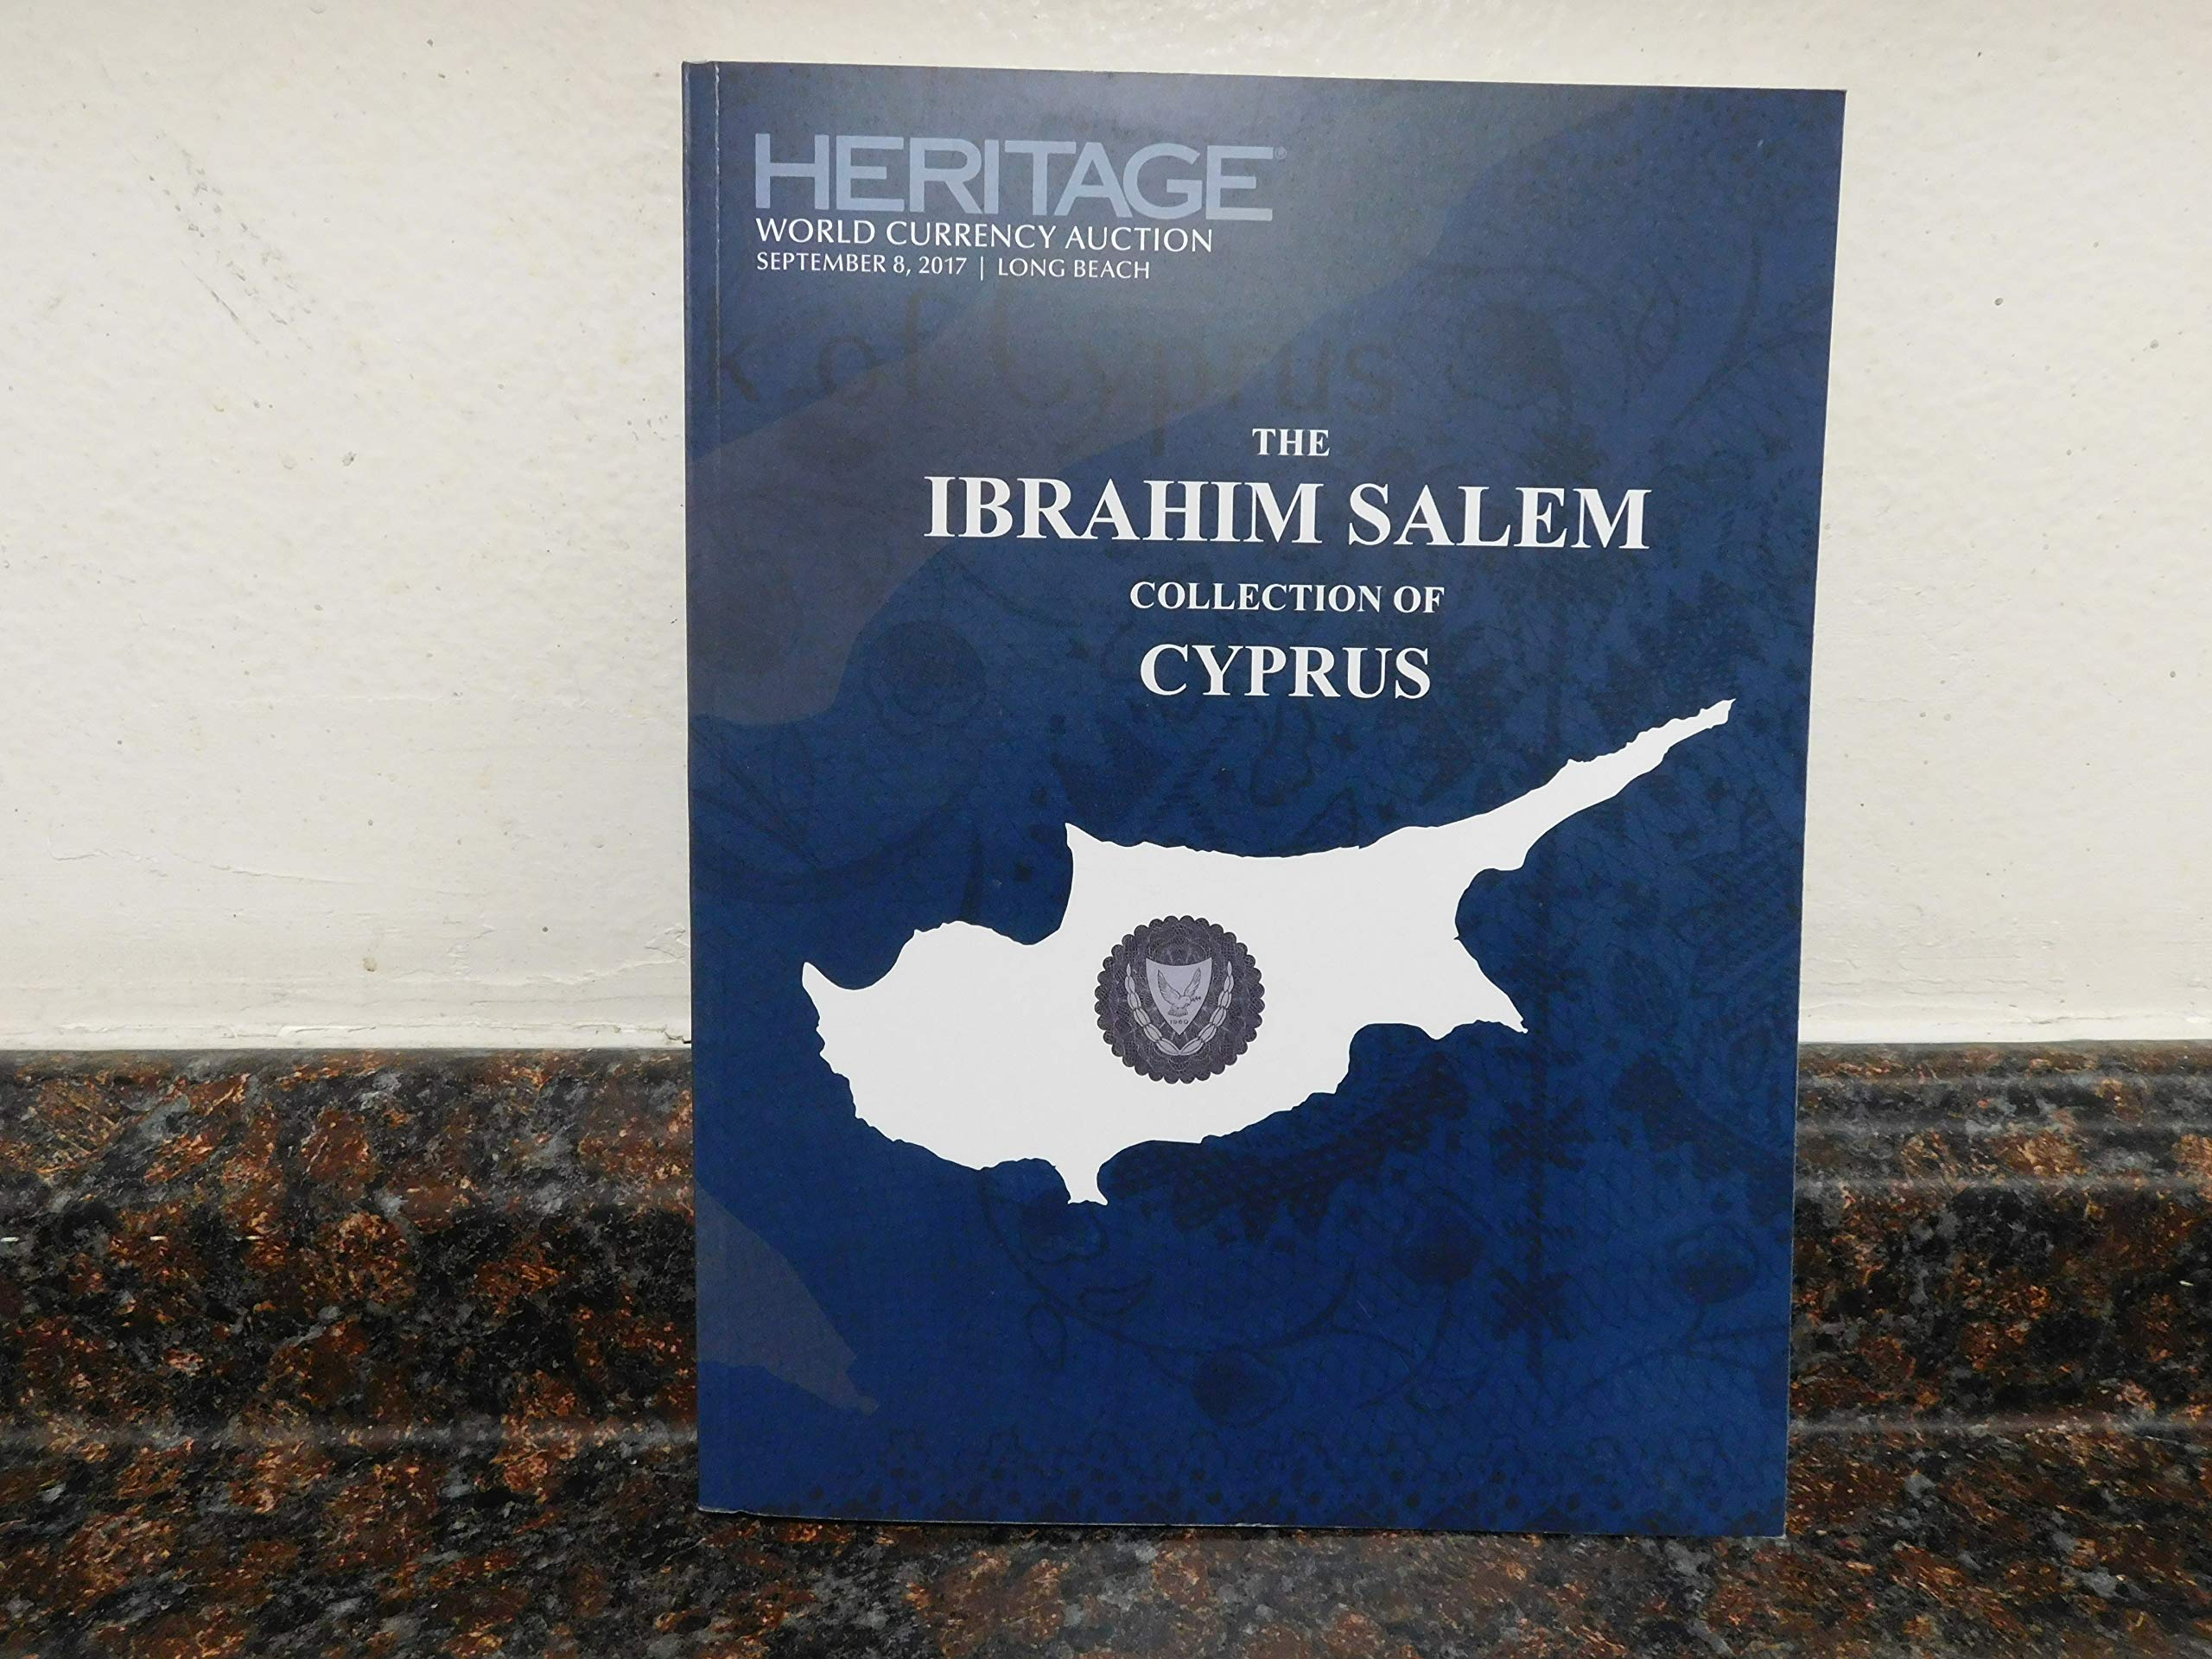 Heritage Auction Catalog-World Currency Auction #3558- The Ibrahim Salem Collection of Cyprus. September 8, 2017. Long Beach. by Heri